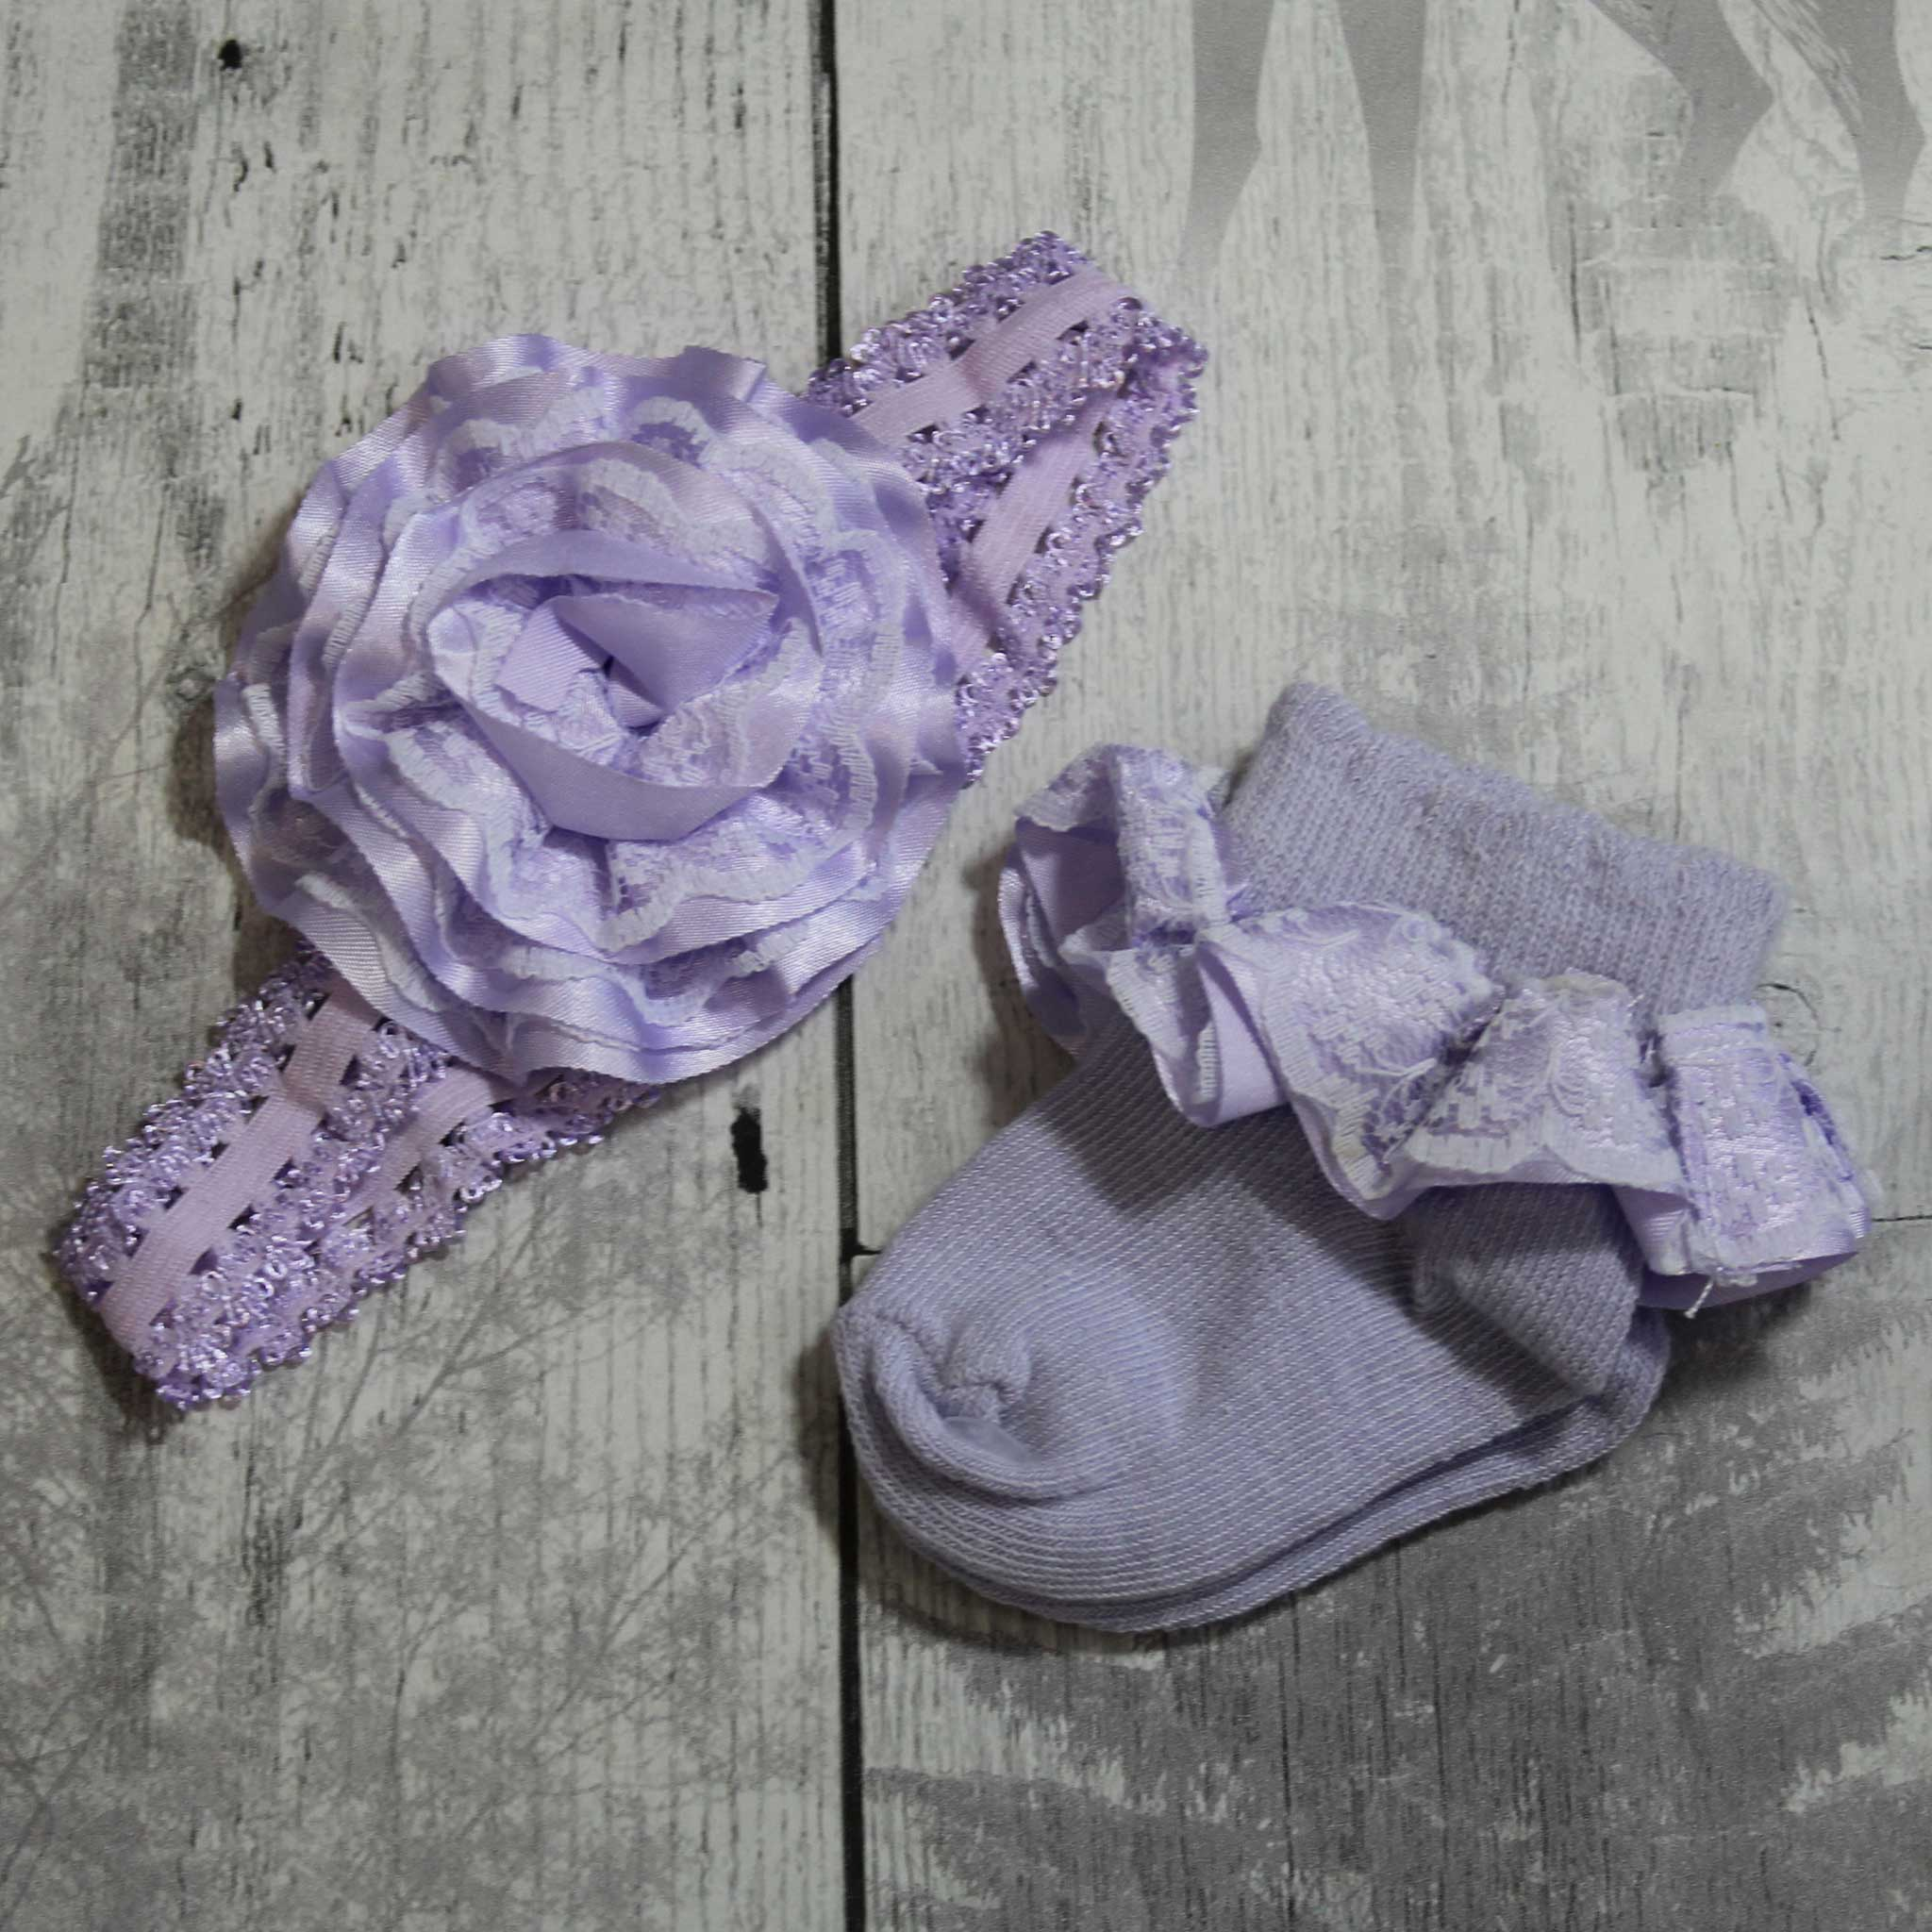 Lilac Socks and Headband Set